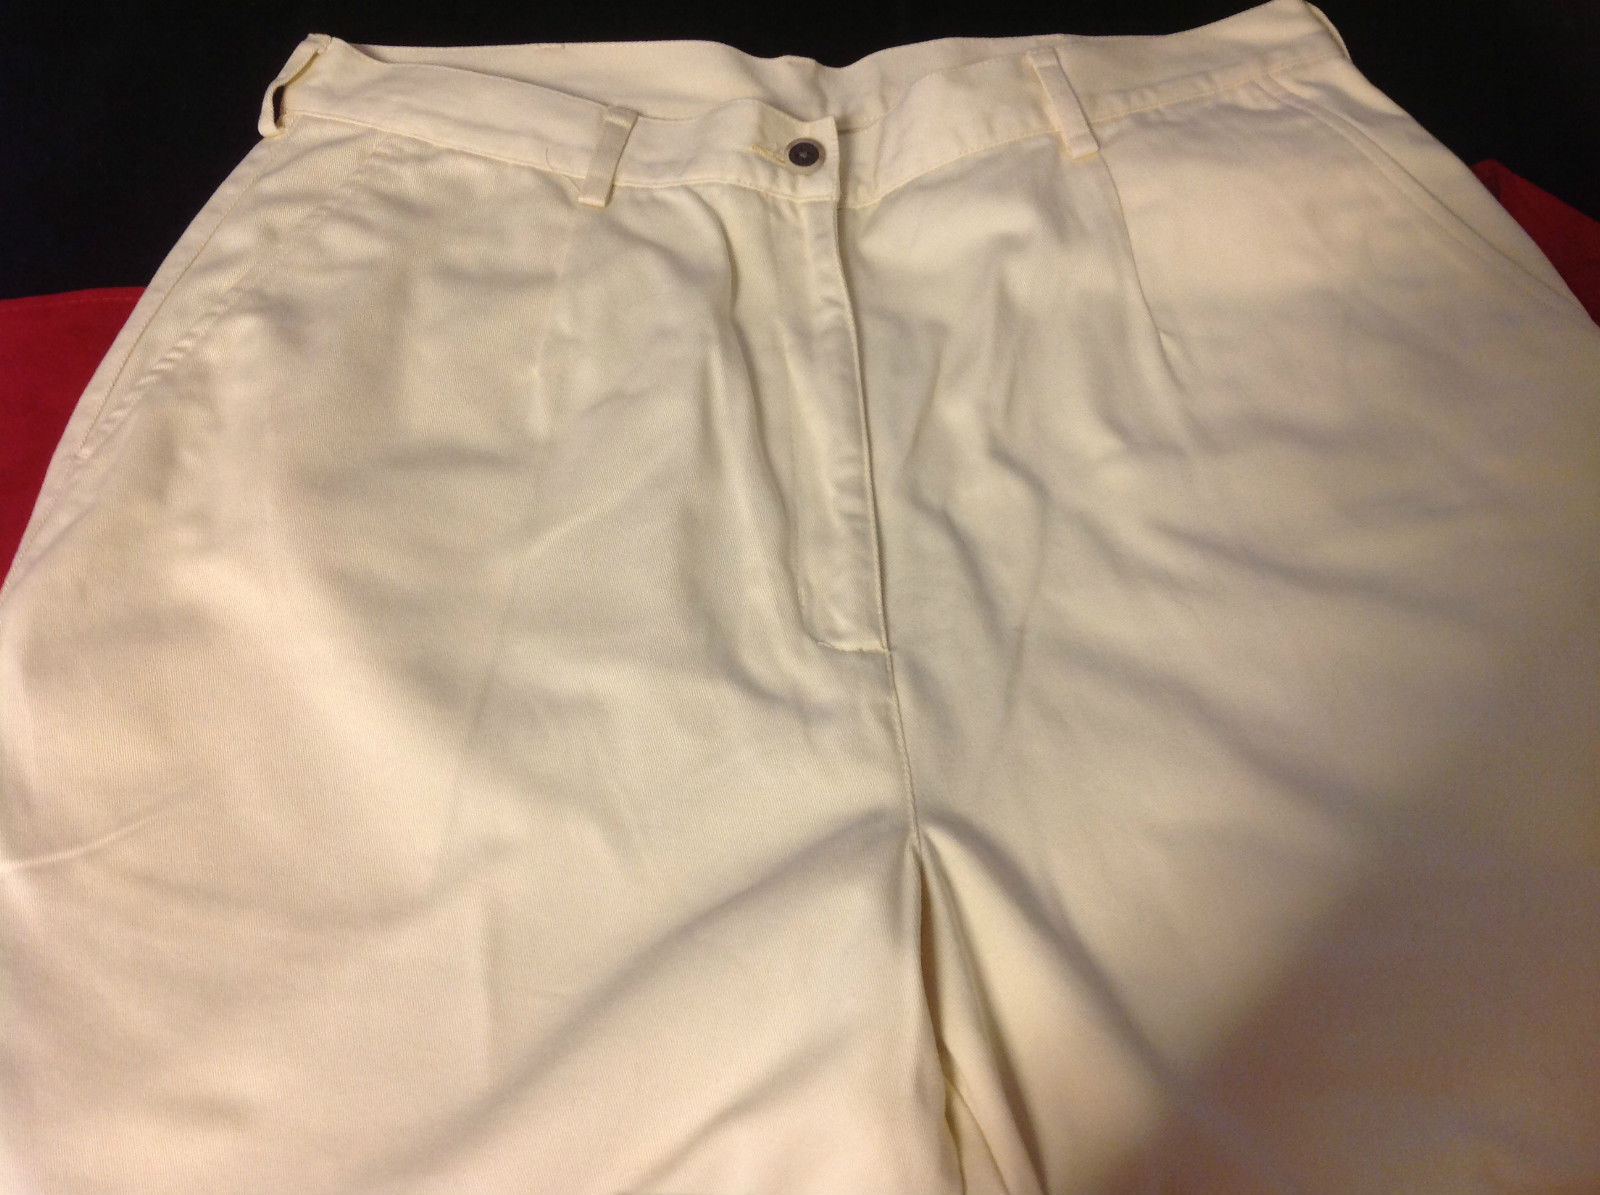 L L Bean womens cream color pants size 16 regular